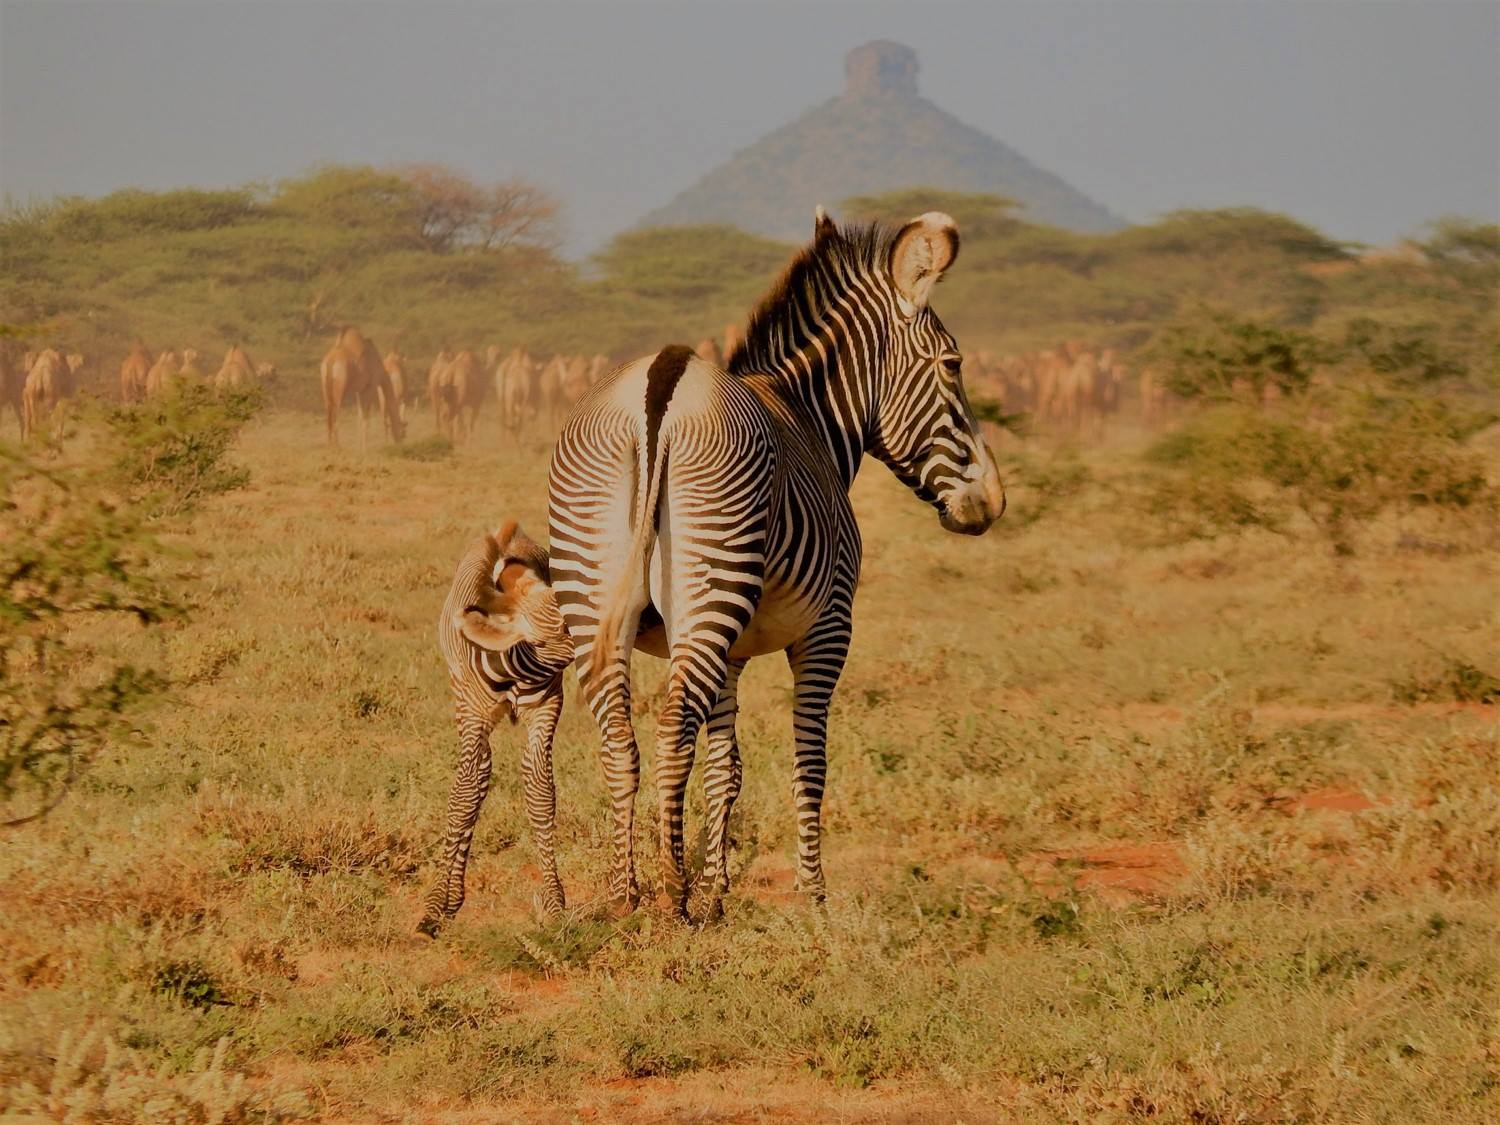 """""""Grevy's zebra foals and their protective mothers are inhabiting Naibelibeli plains in high numbers- over 20 very young foals were seen during a drive out to the plains yesterday morning. It is a testament to the good rains and plentiful pasture in Westgate Conservancy. The foals survival will be dependent on the onset of the rains in April, replenishing the diminishing pasture and water resources that are subject to increasing competition from livestock, wildlife and people as the dry season extends."""" Image and caption courtesy of Grevy's Zebra Trust"""